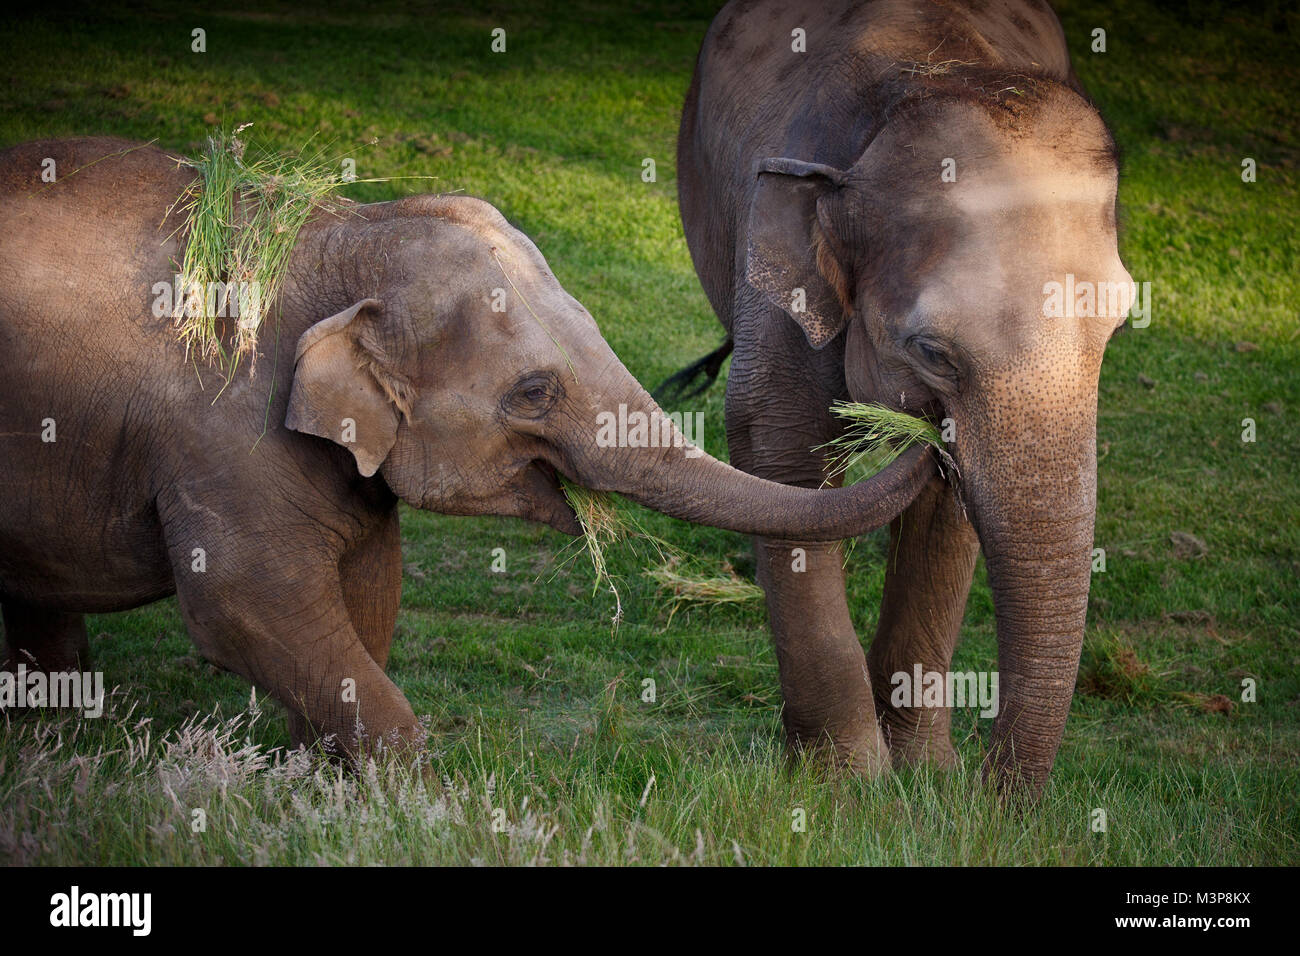 Asian Elephant at ZSL Whipsnade Zoo - Stock Image